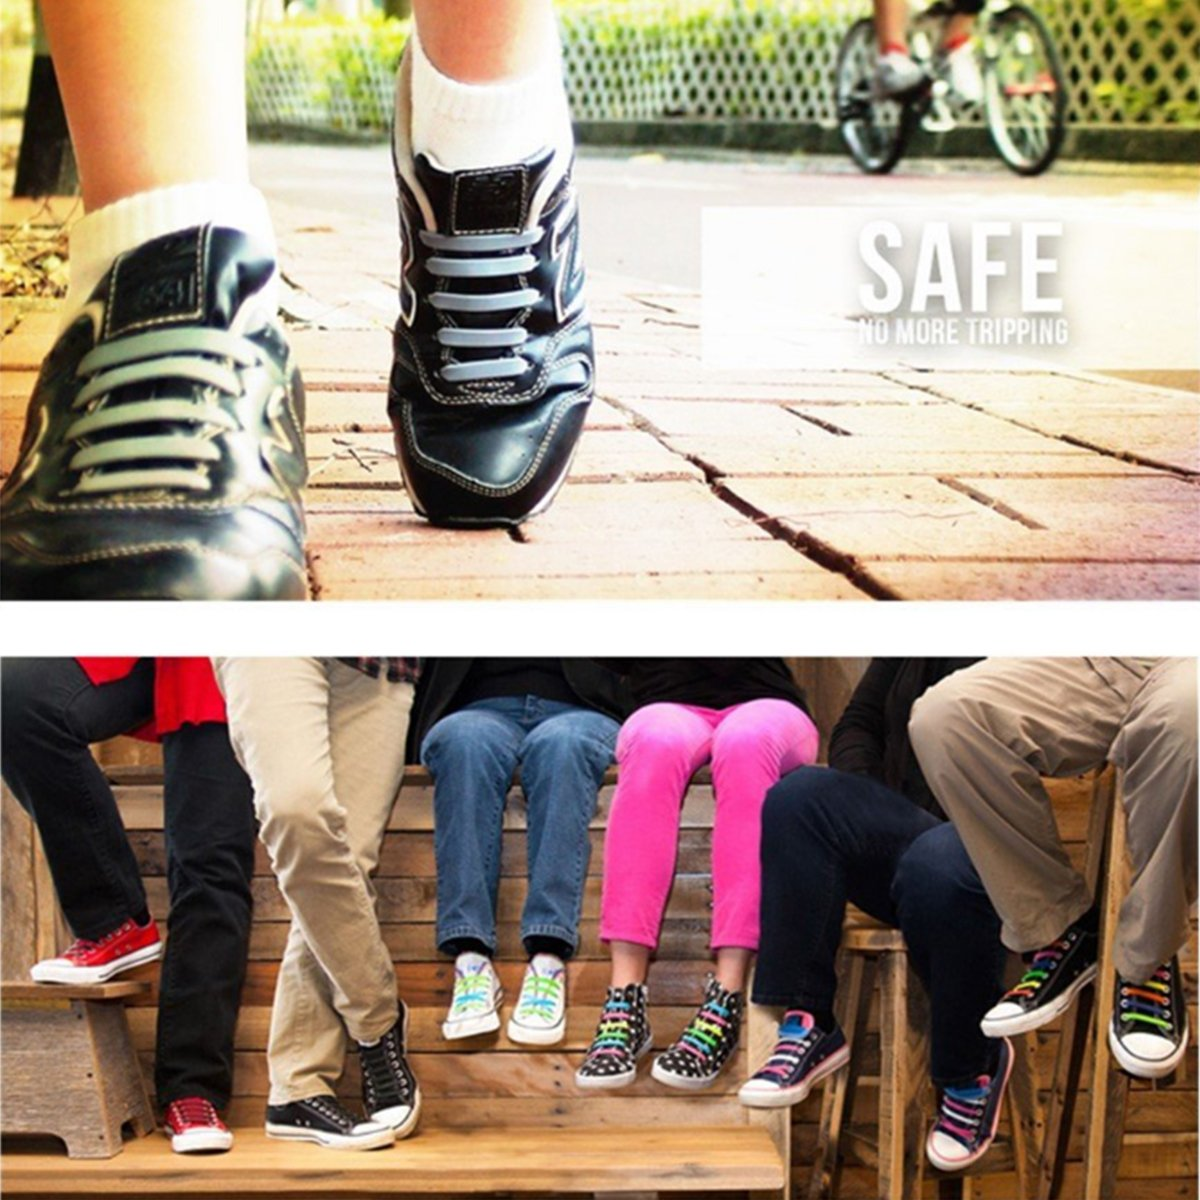 Silicone No Tie Shoelaces - Elastic Silicone Flat Shoelaces for Sneakers No Tie, Tieless Black Shoelaces for Boots/ Hiking Boots/ Dress Shoes